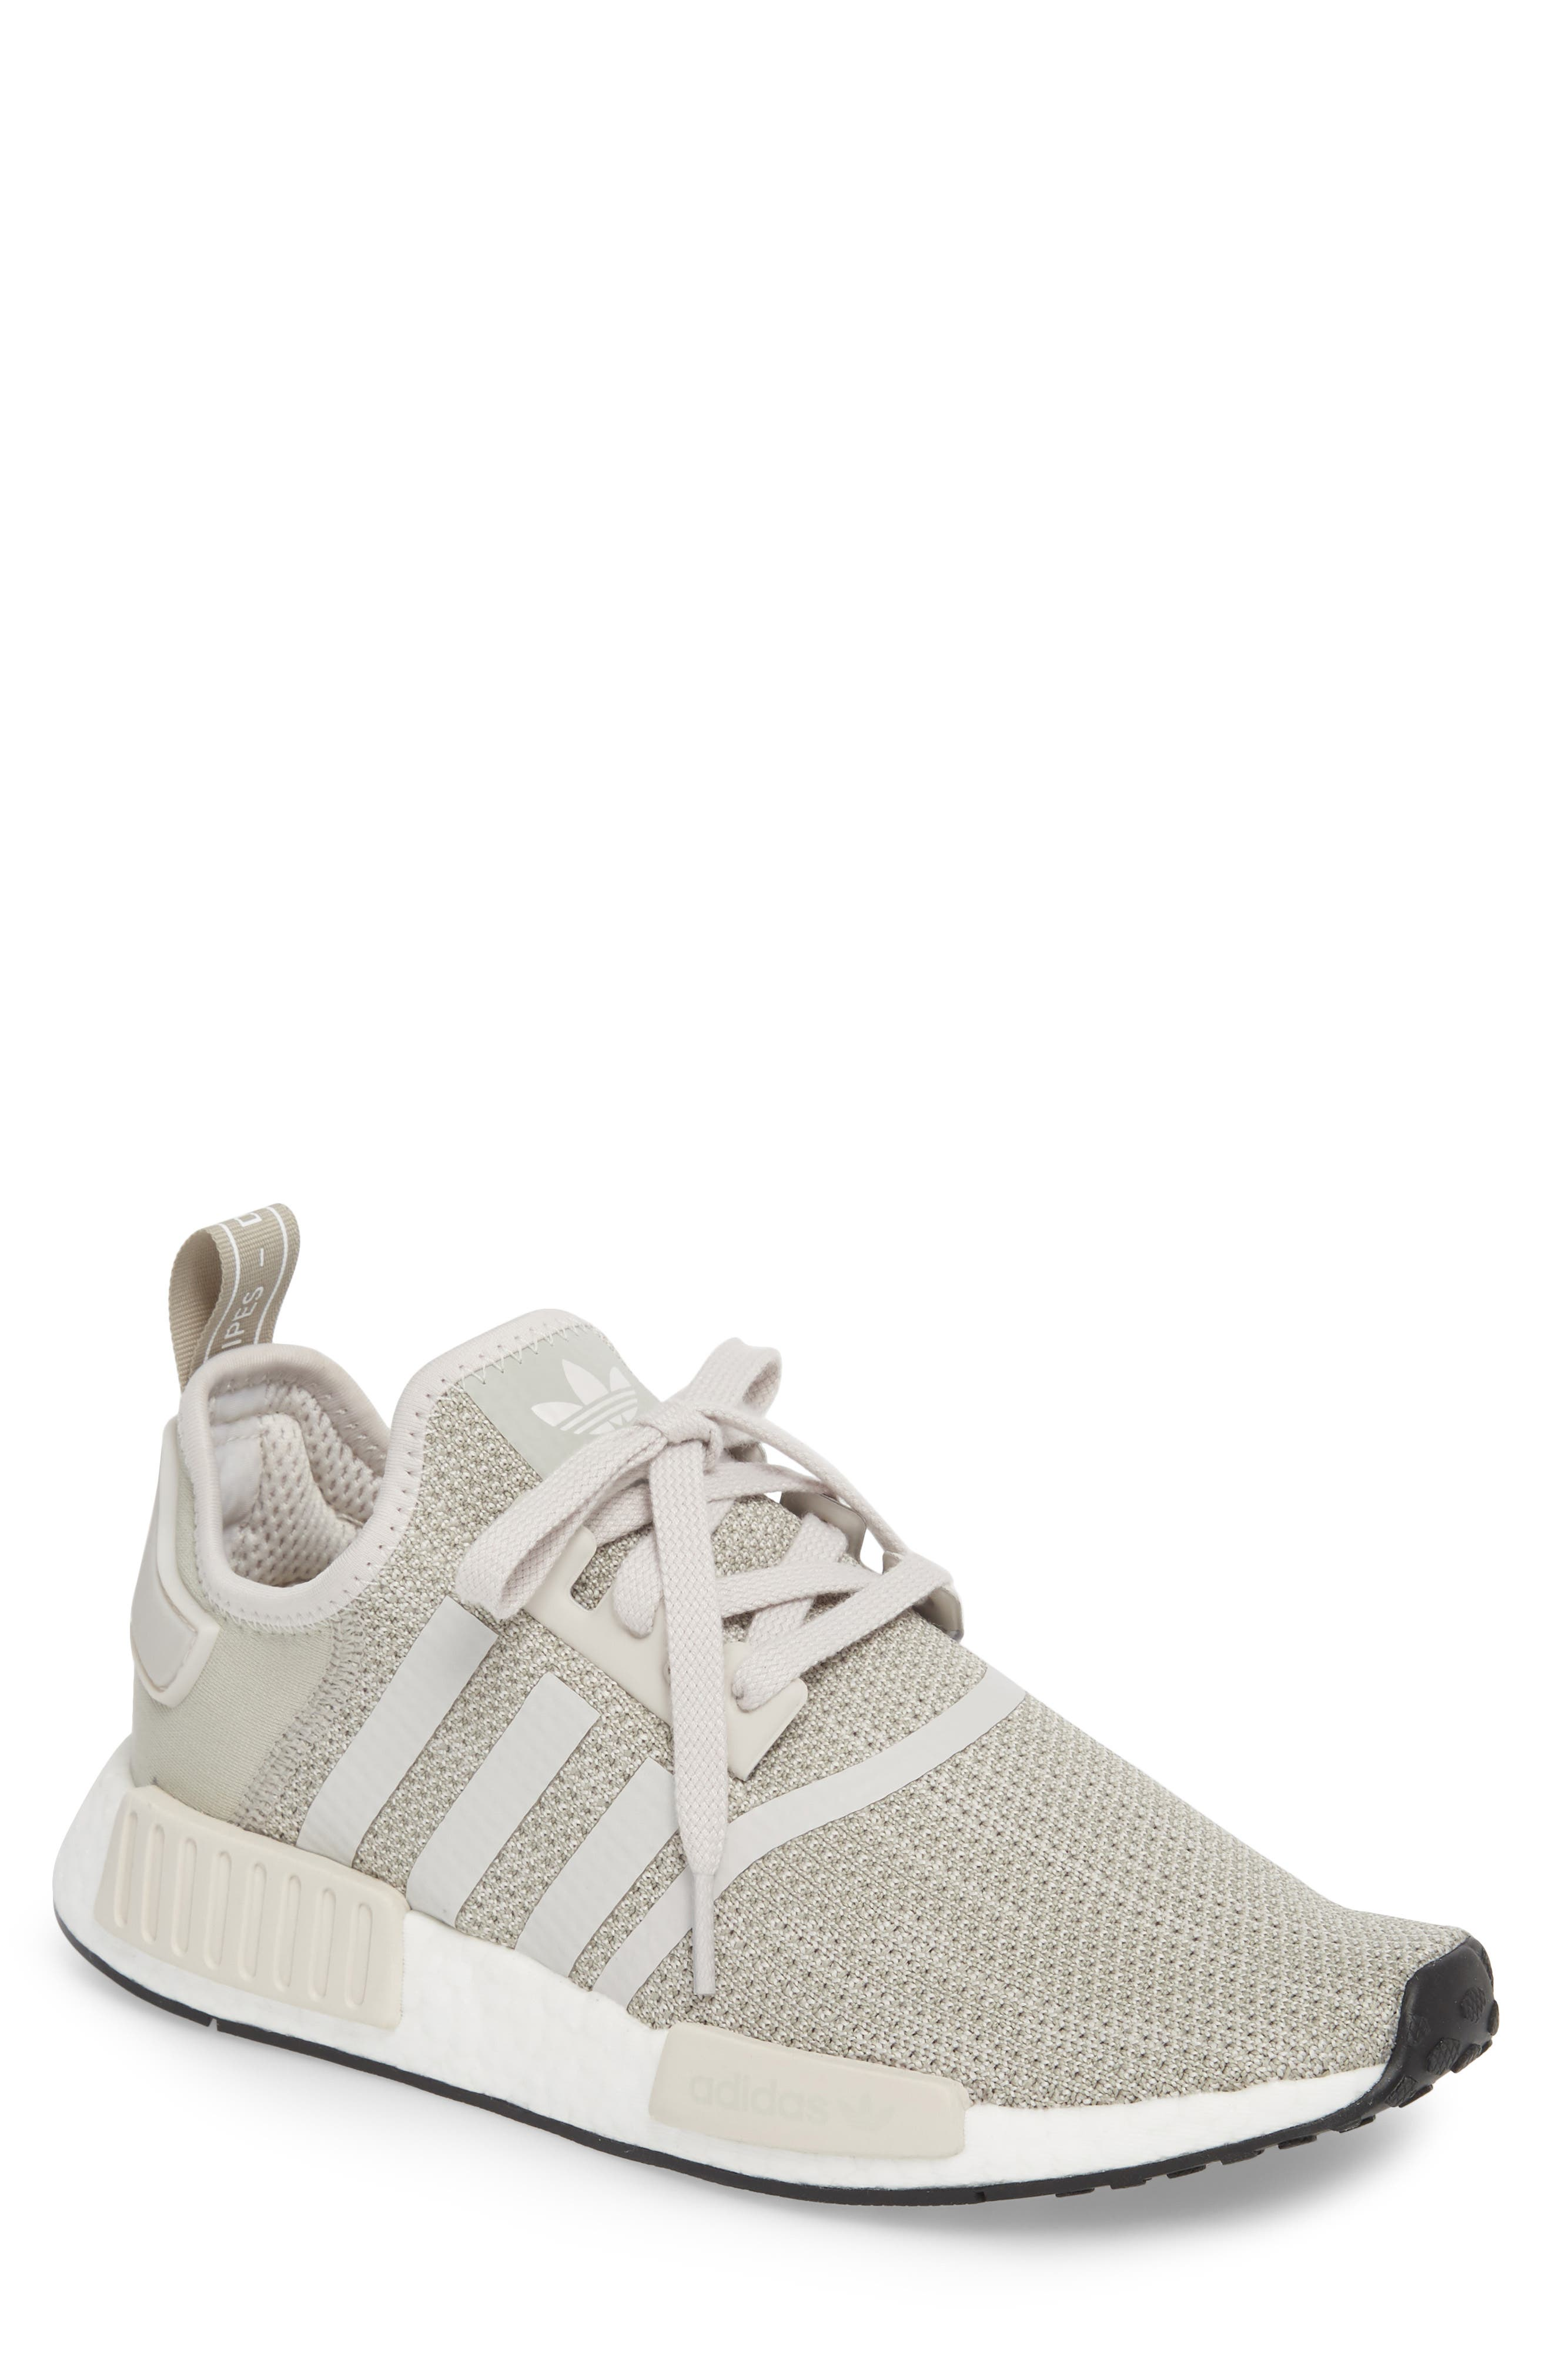 NMD_R1 Sneaker,                             Main thumbnail 1, color,                             205